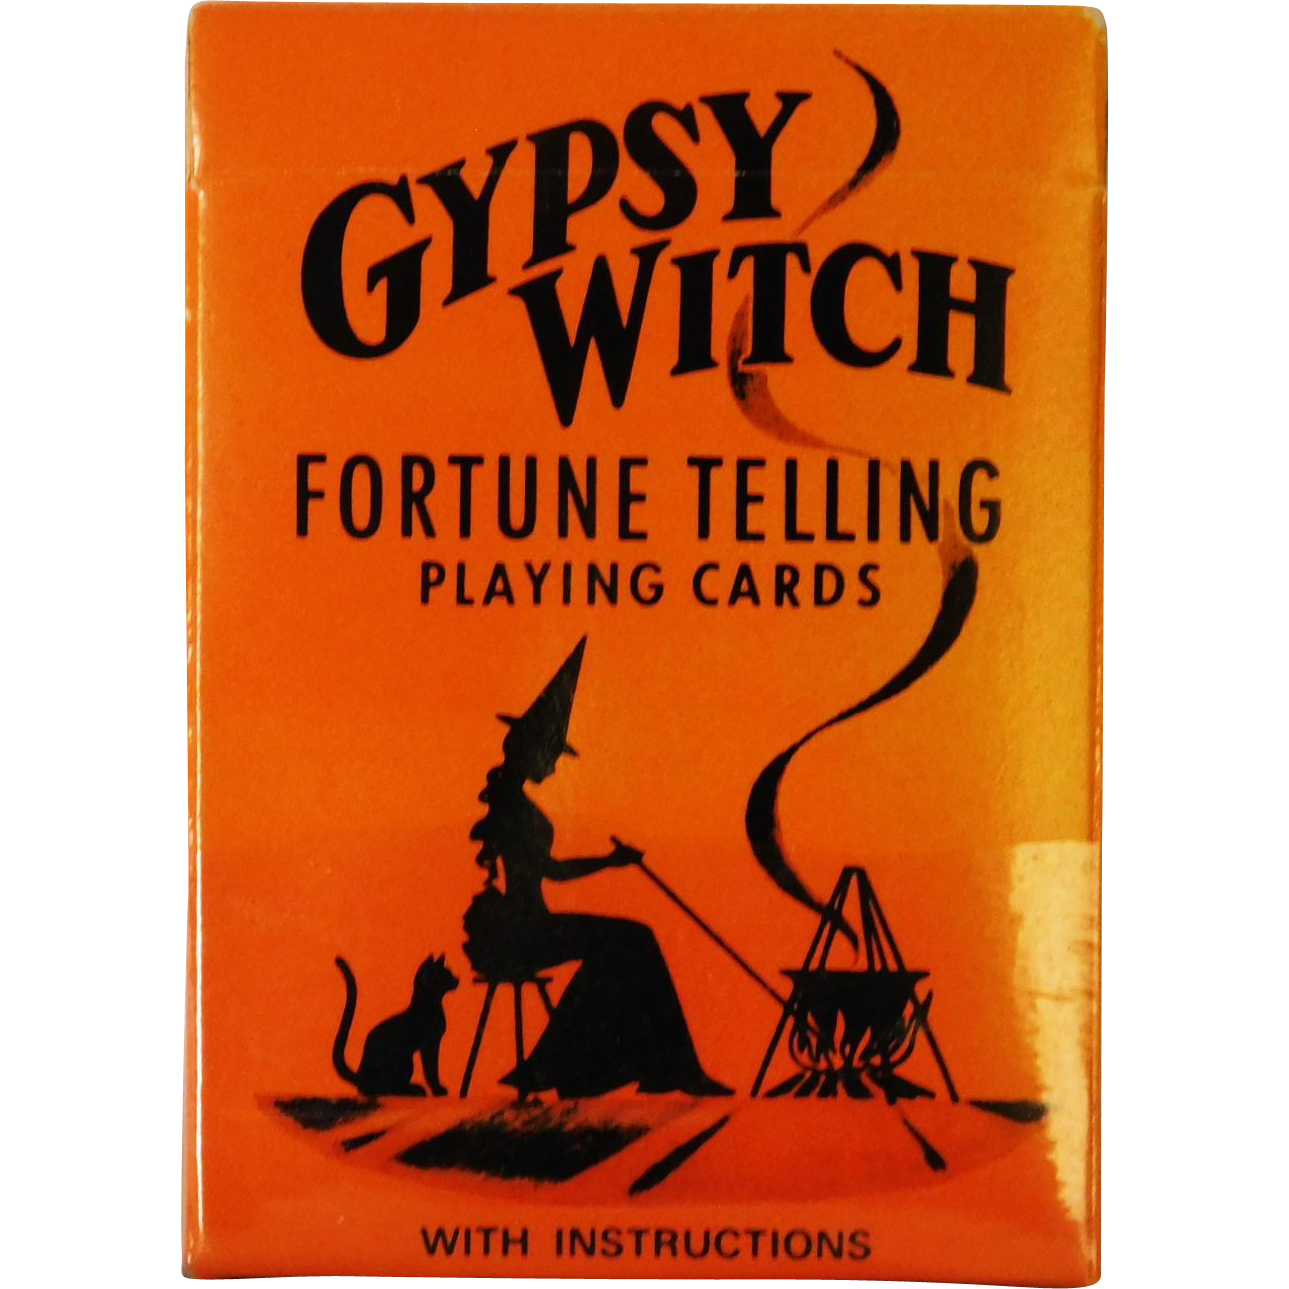 Fun Vintage Halloween Gypsy Witch Fortune Telling Cards & Instructions